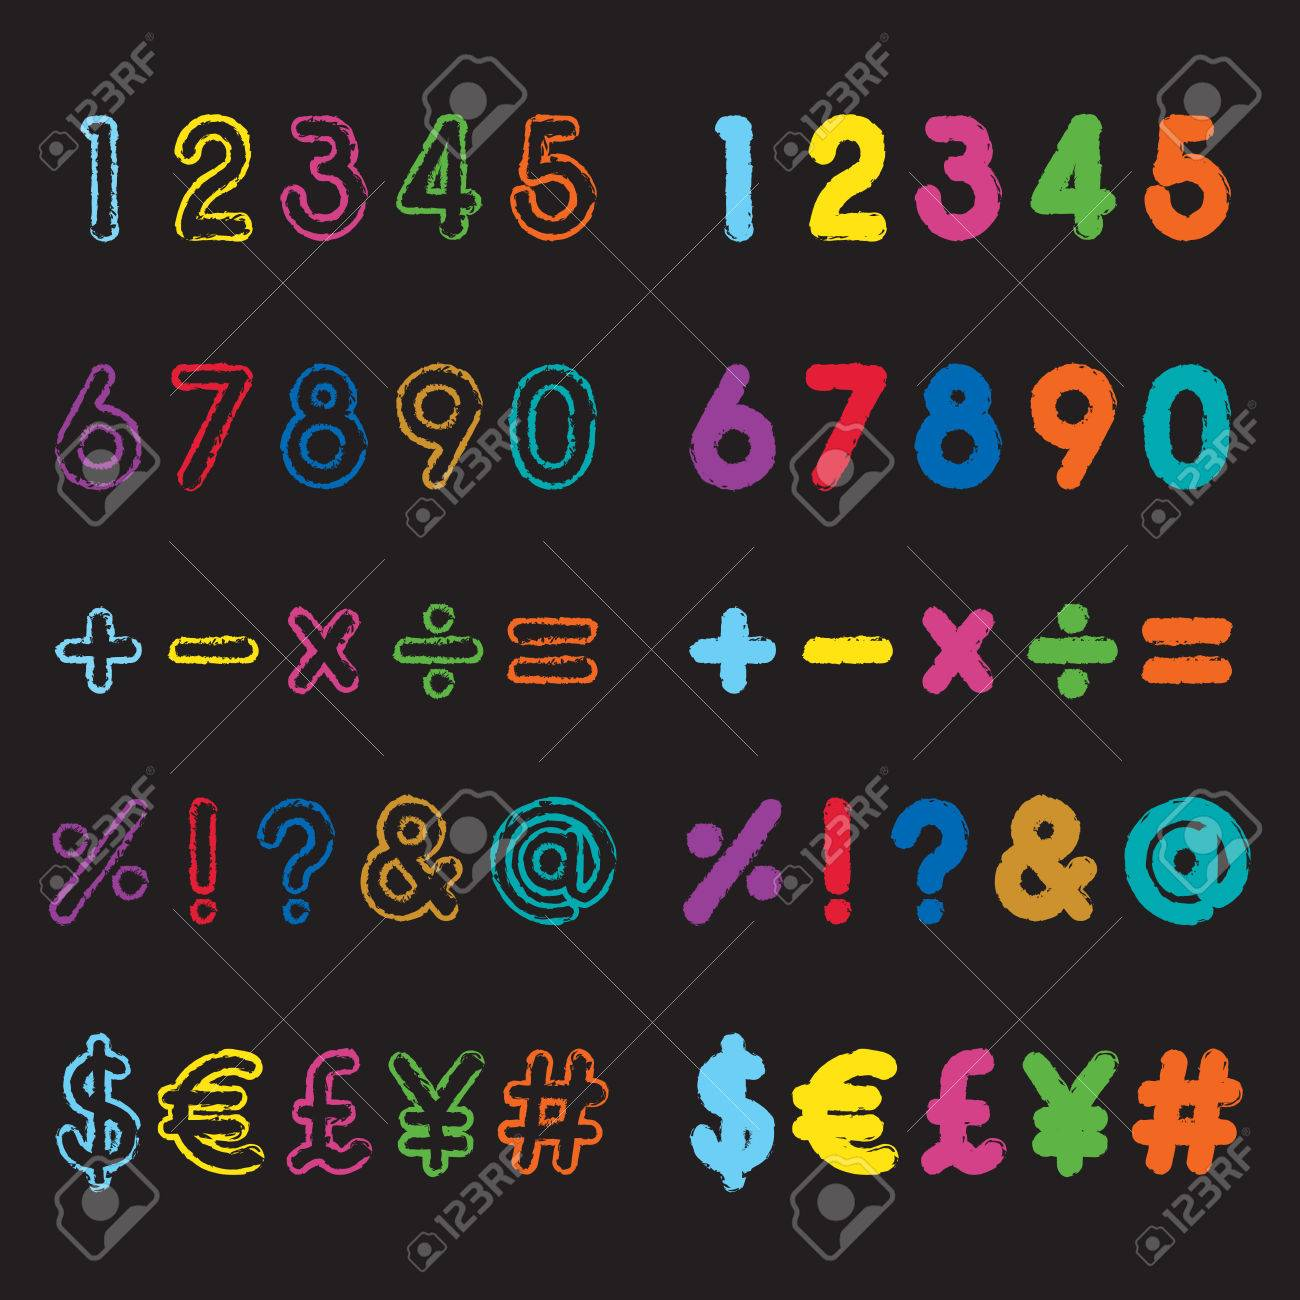 Colorful Grunge Style Number And Symbol Fonts Royalty Free Cliparts